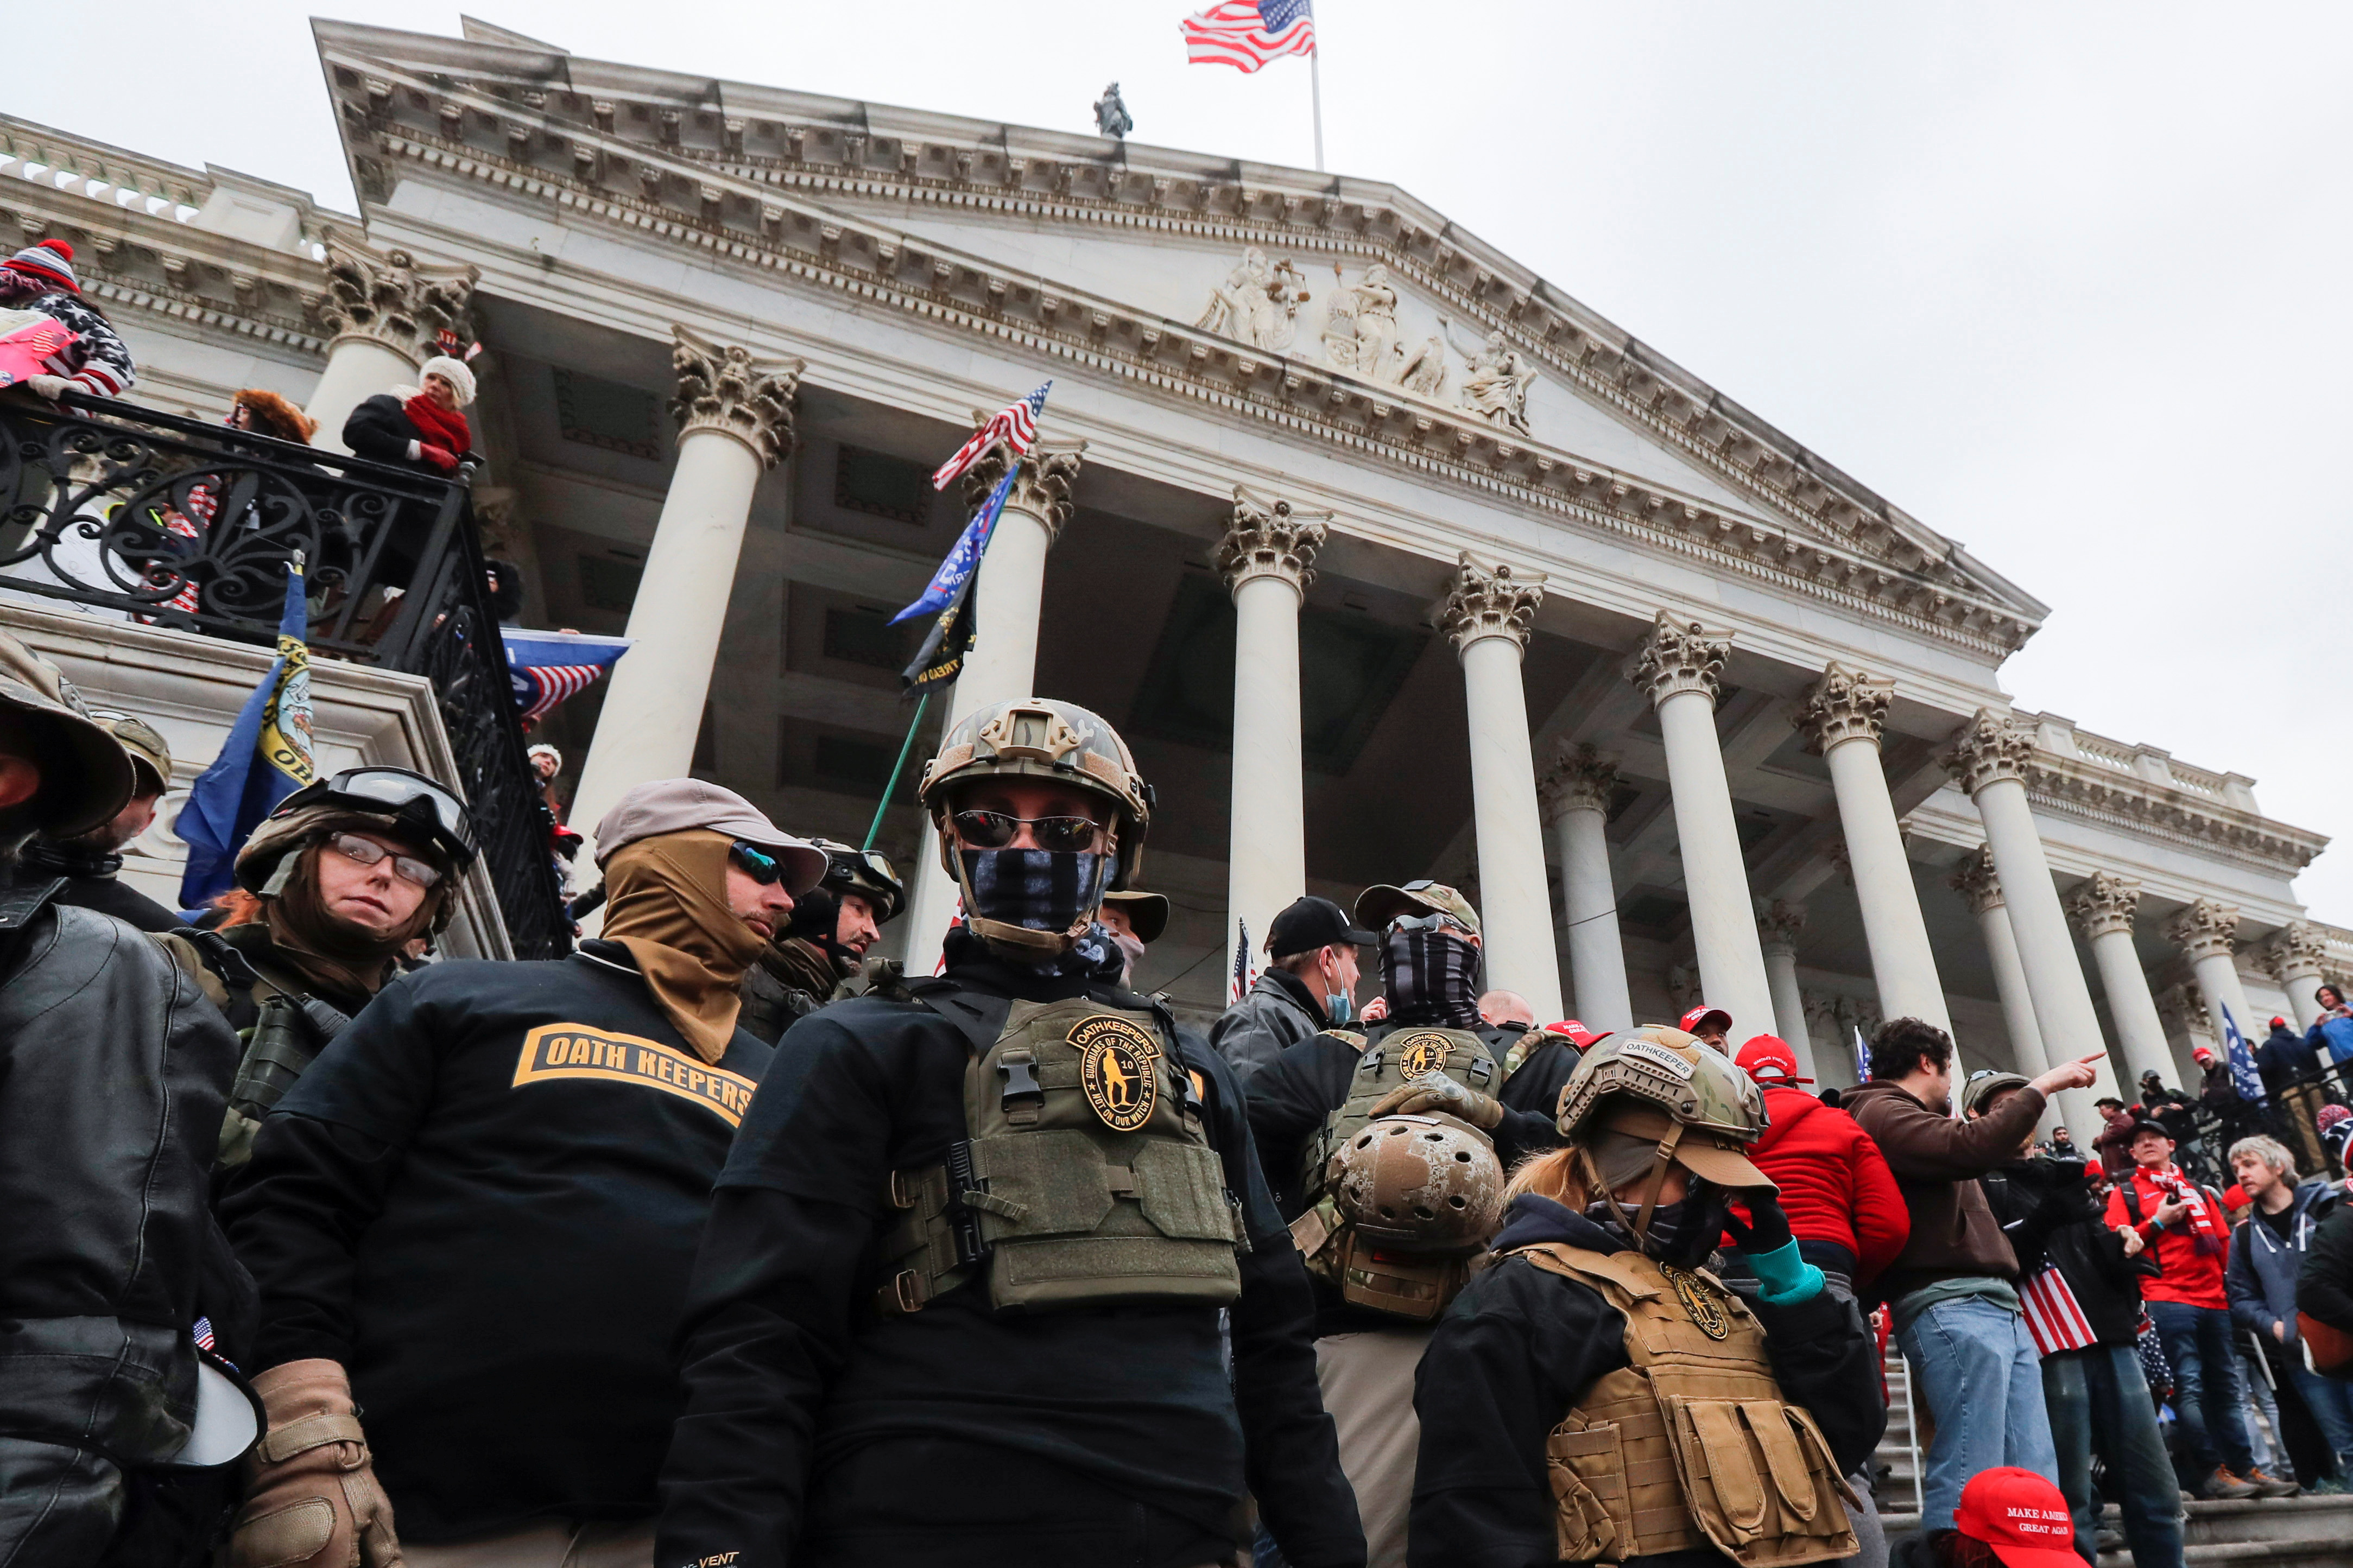 Members of the Oath Keepers militia group, including Jessica Marie Watkins (Far Left) who has since been indicted by federal authorities for her role in the siege on the Capitol, stand among supporters of U.S. President Donald Trump occupying the east front steps of the U.S. Capitol in Washington, U.S., January 6, 2021. Picture taken January 6, 2021. REUTERS/Jim Bourg